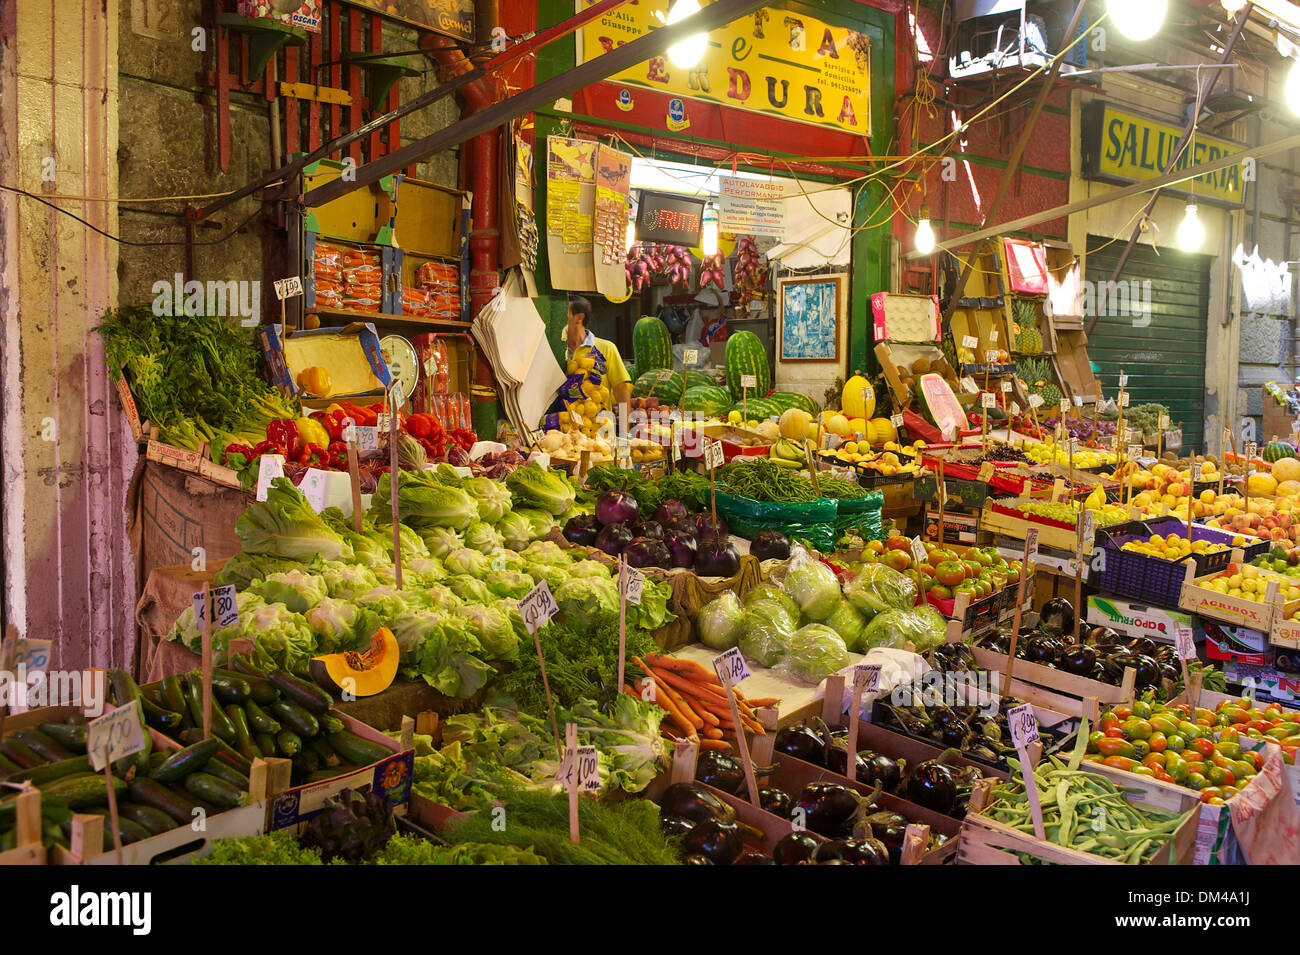 Italy Sicily South Italy Europe island market stalls market trade commerce fruit vegetables food groceries Palermo outside day - Stock Image